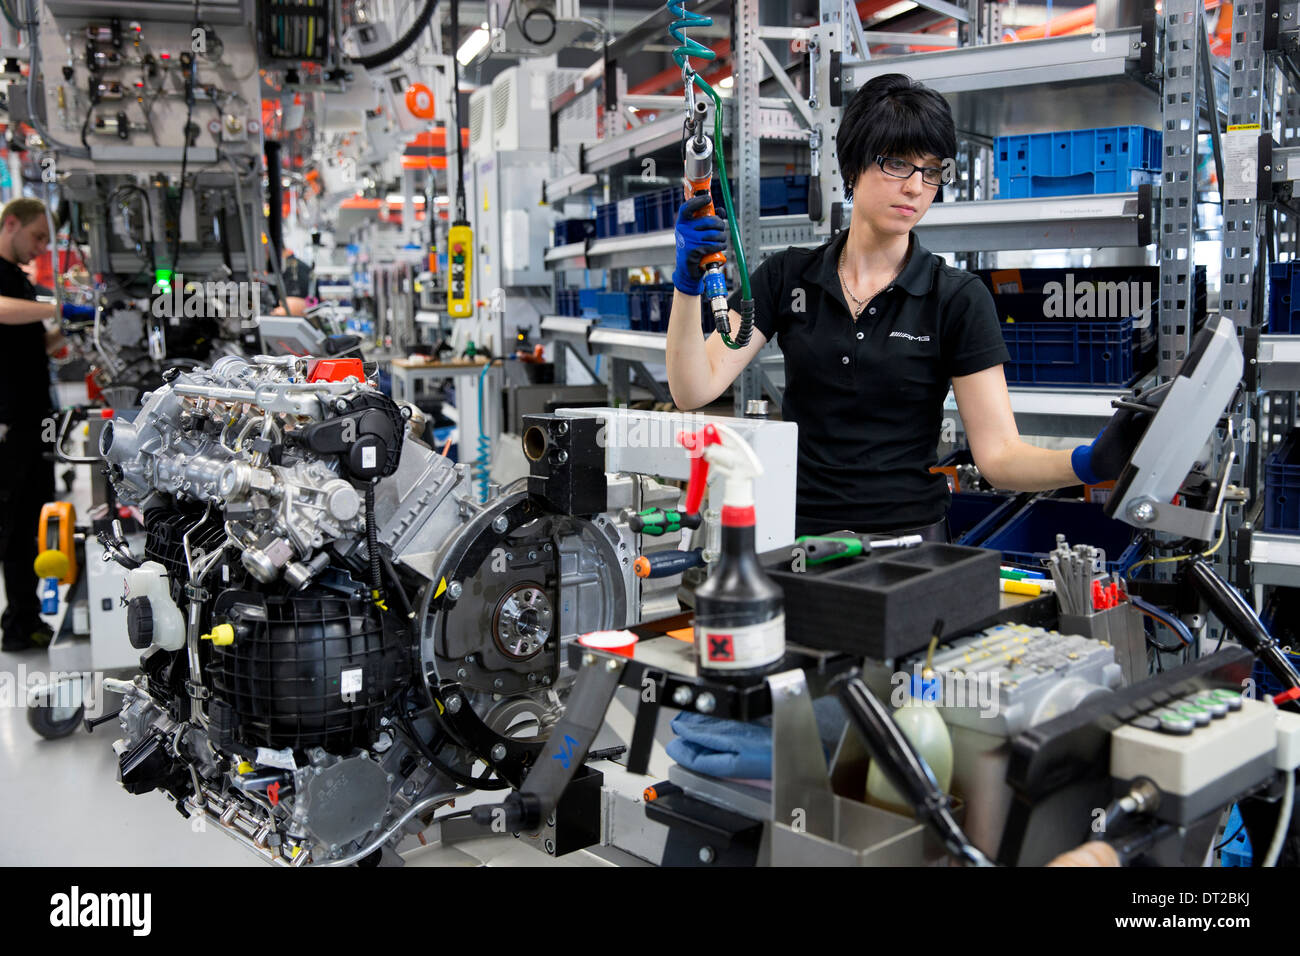 Mercedes-AMG engine production factory in Affalterbach, Germany - female engineer hand-builds a M157 5.5L V8 biturbo engine - Stock Image